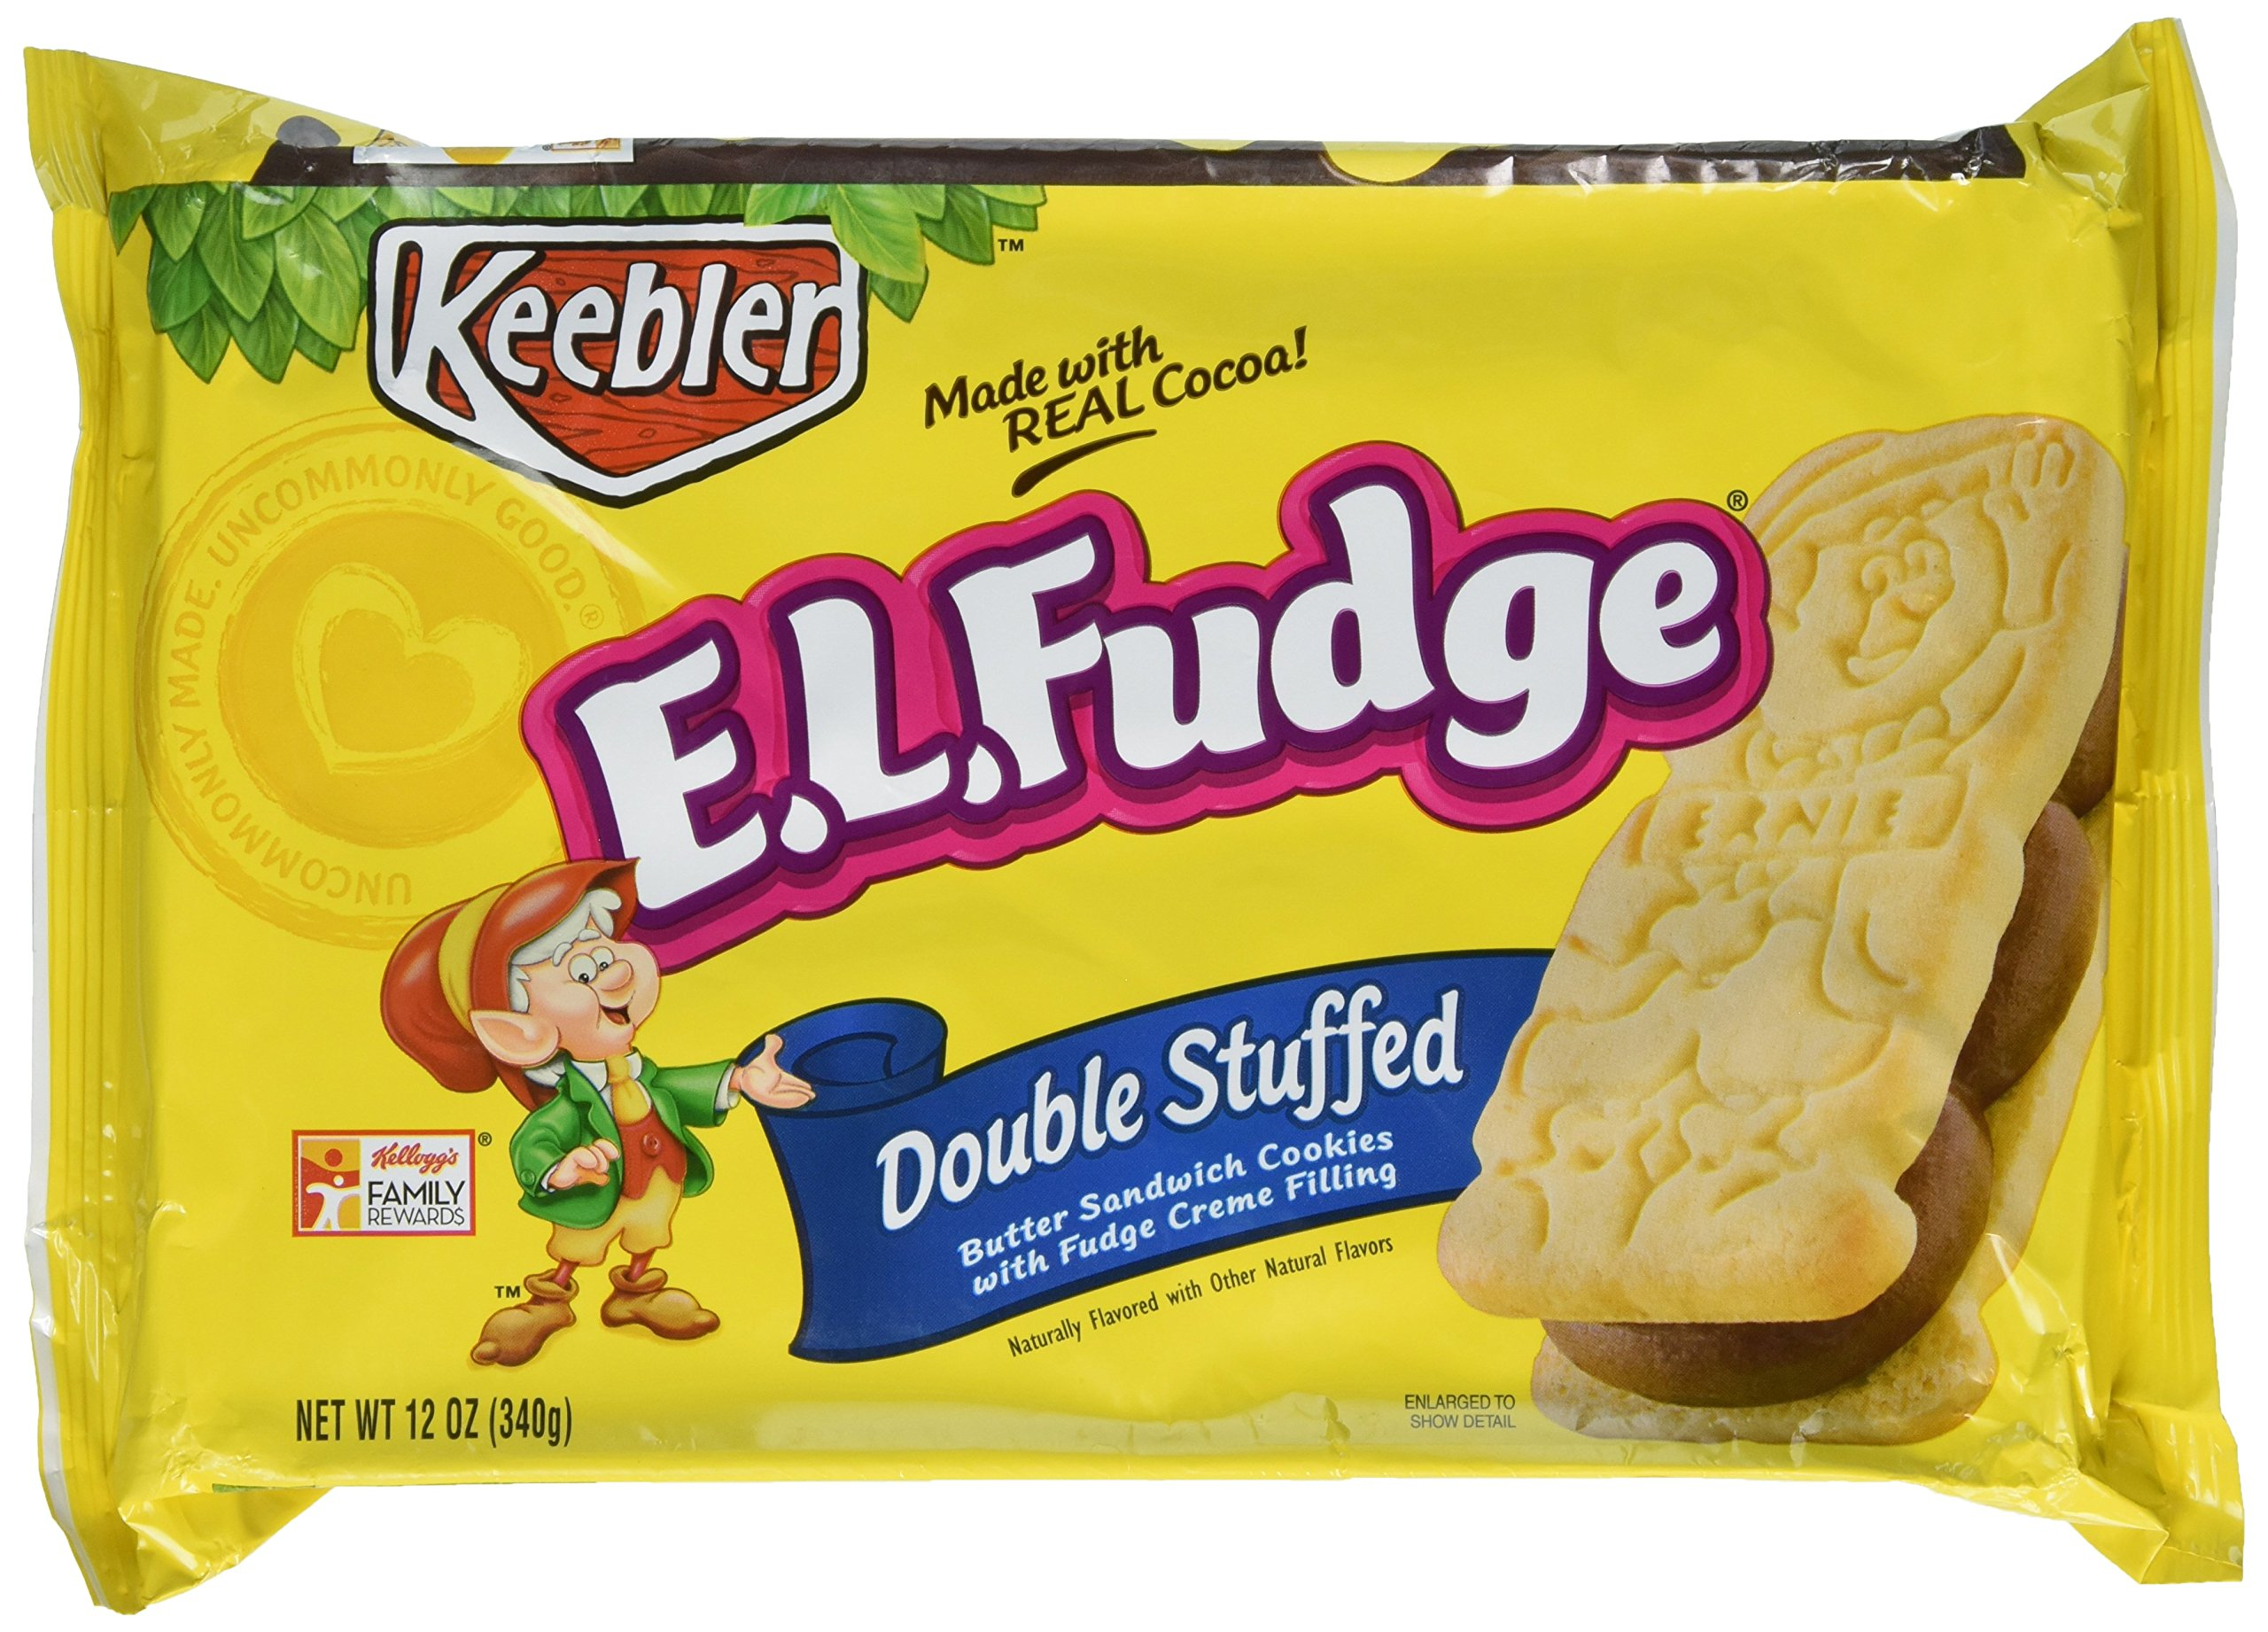 E.L. Fudge Butter Sandwich Cookies with Fudge Creme Filling, Double Stuffed, 12-Ounce Packages (Pack of 6)